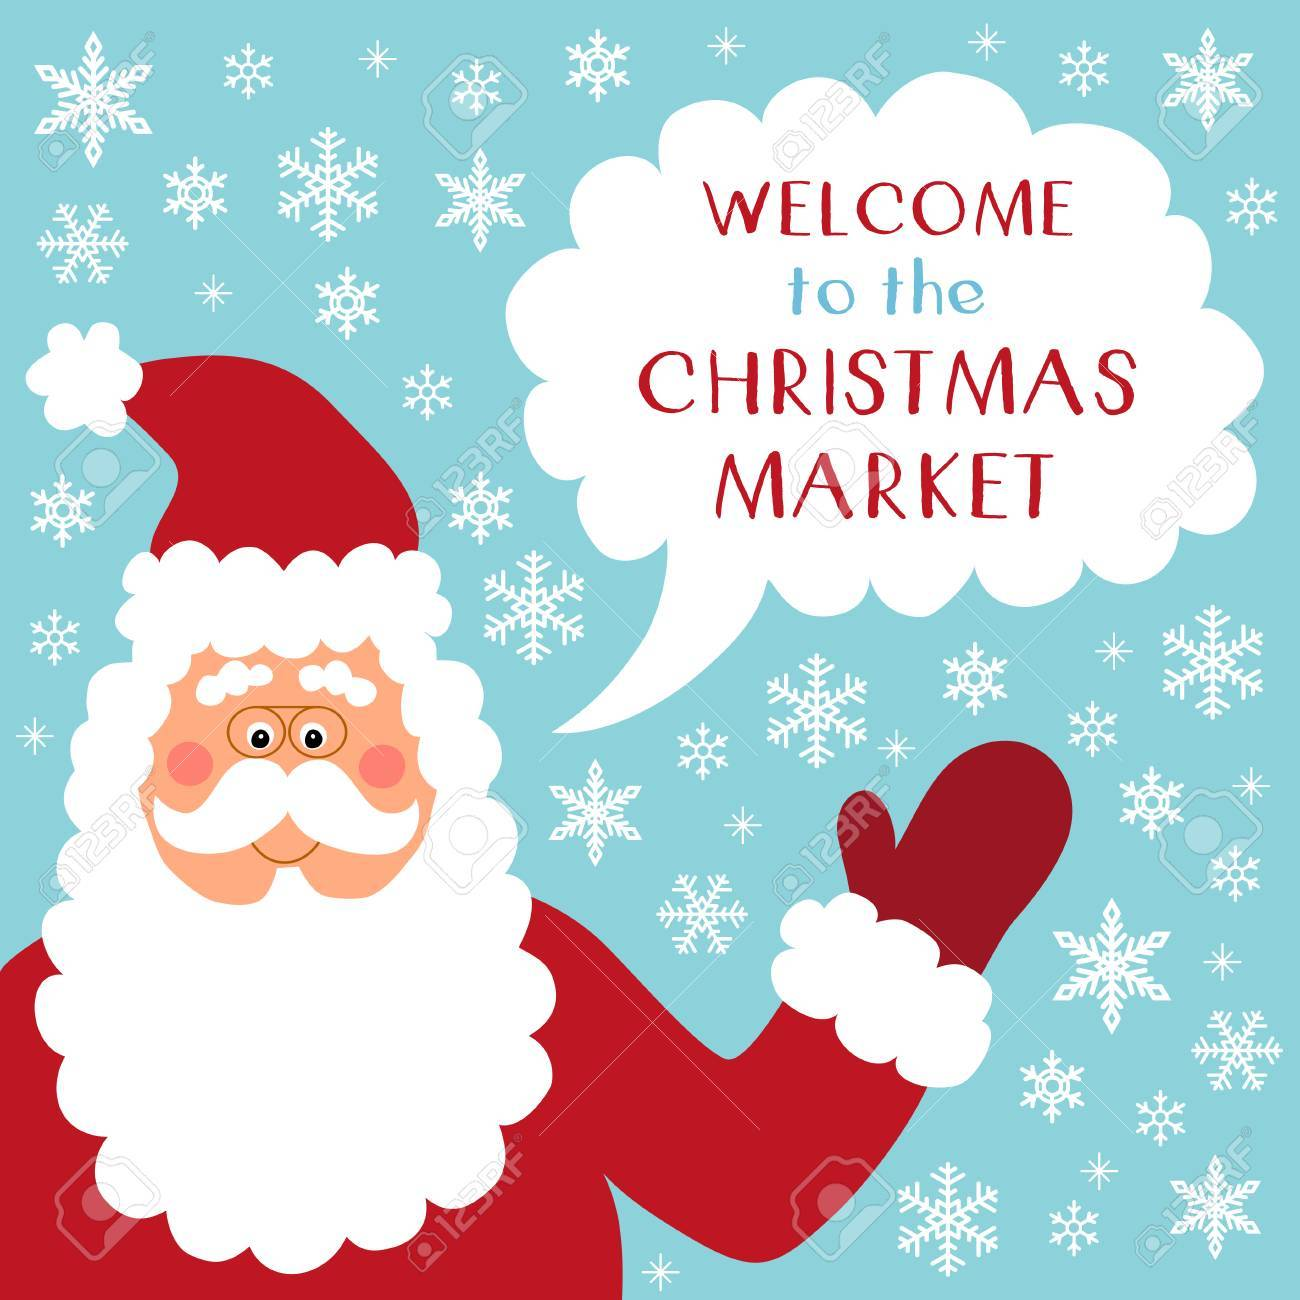 542dceaab7 Cute retro banner with funny cartoon character of Santa Claus with speech  bubble and quote Welcome